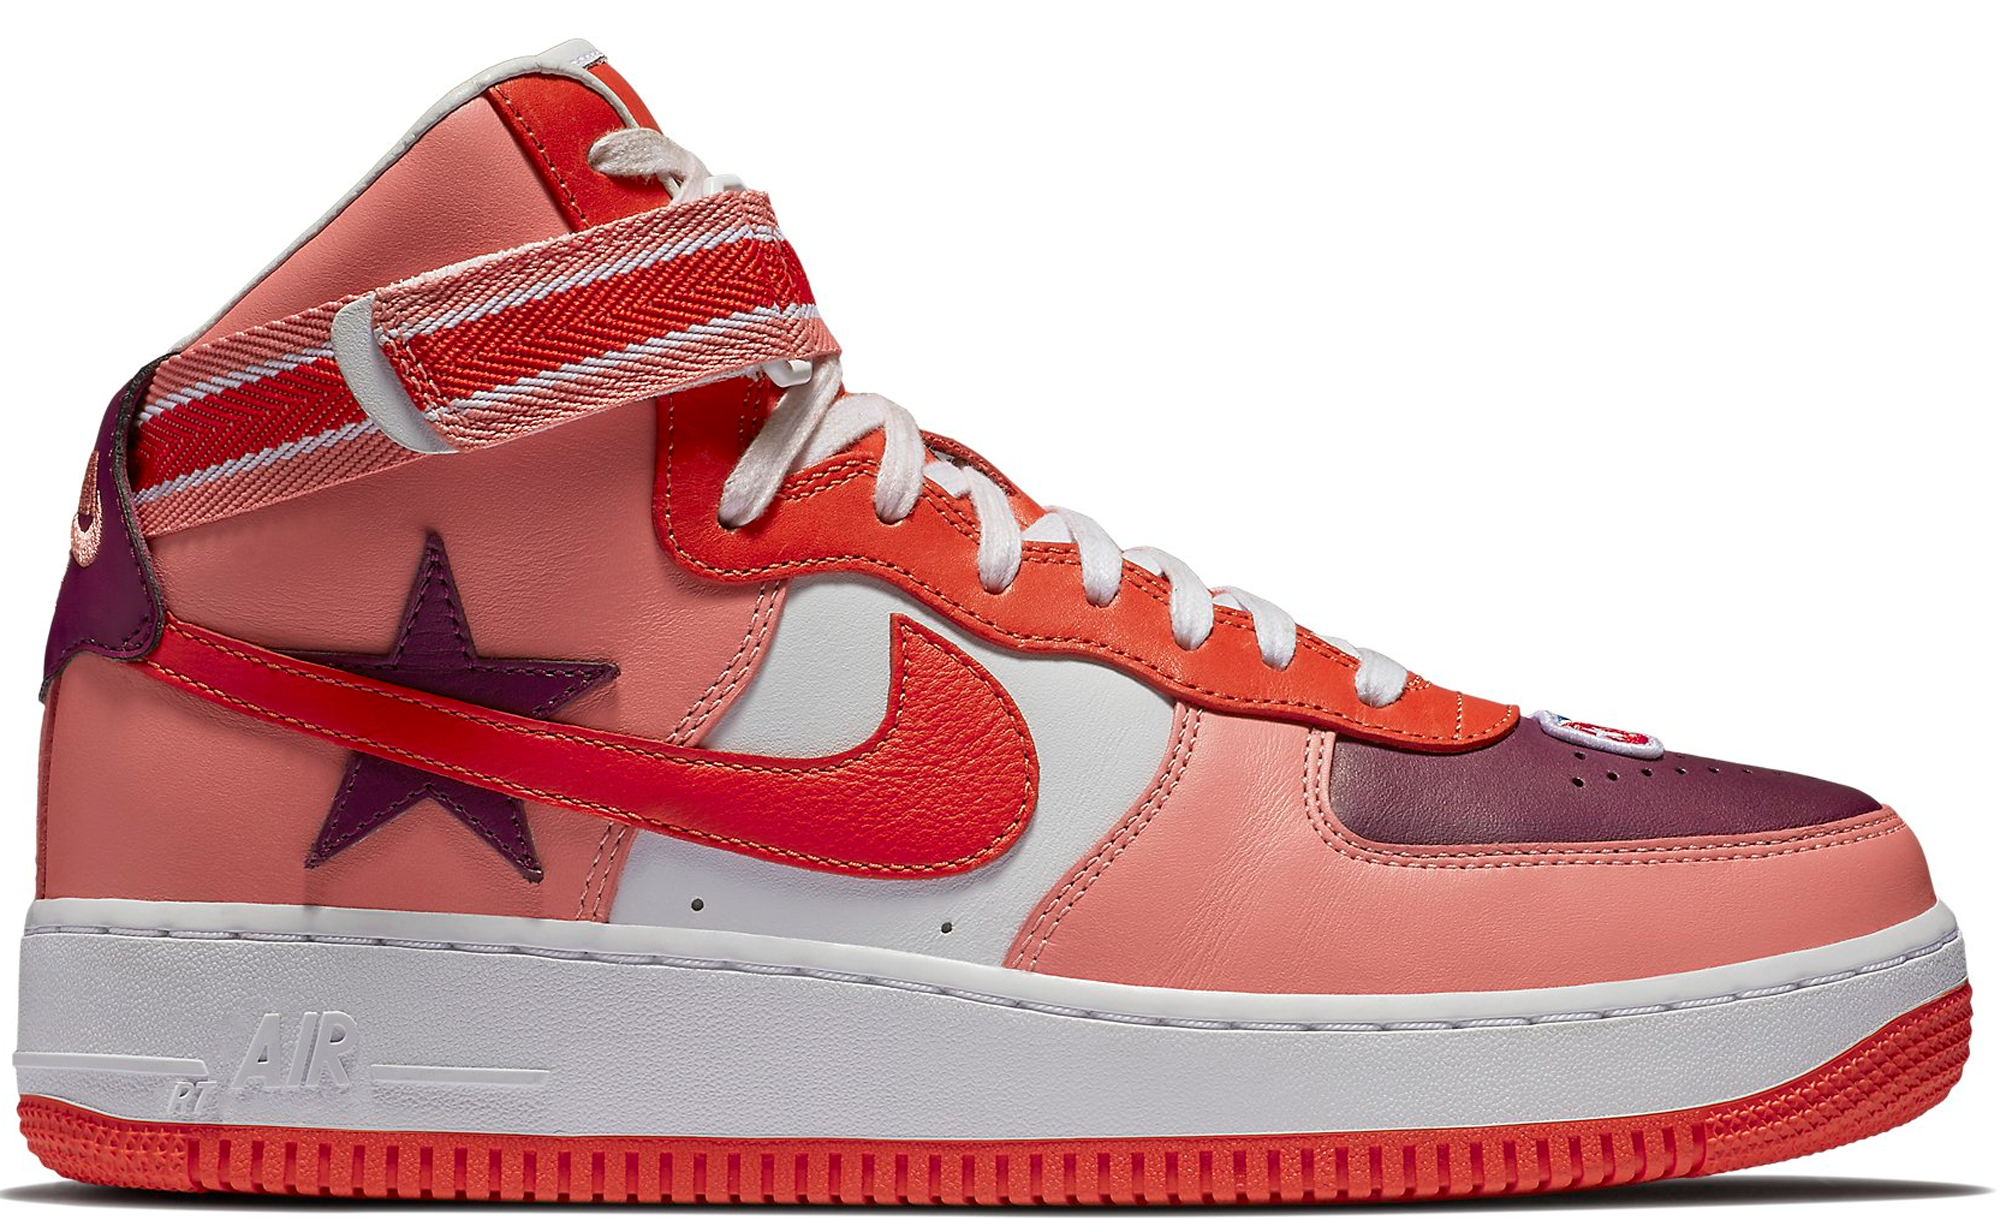 Rt 9 Auto Sales >> Air Force 1 High Riccardo Tisci All-Star 2018 (Pink)